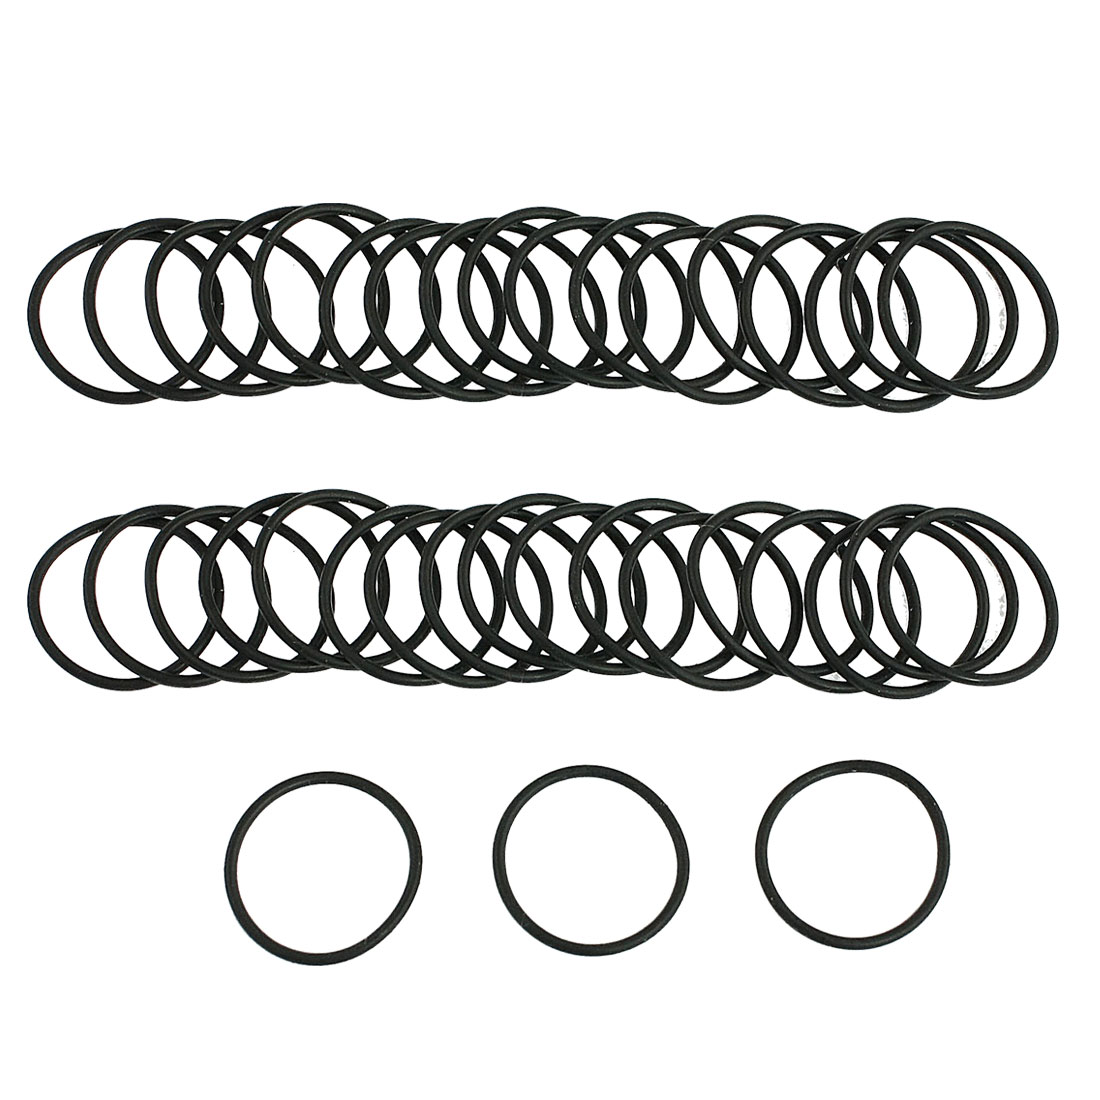 Automobile 15mm x 1mm O Rings Hole Sealing Gasket Washers 50 Pcs